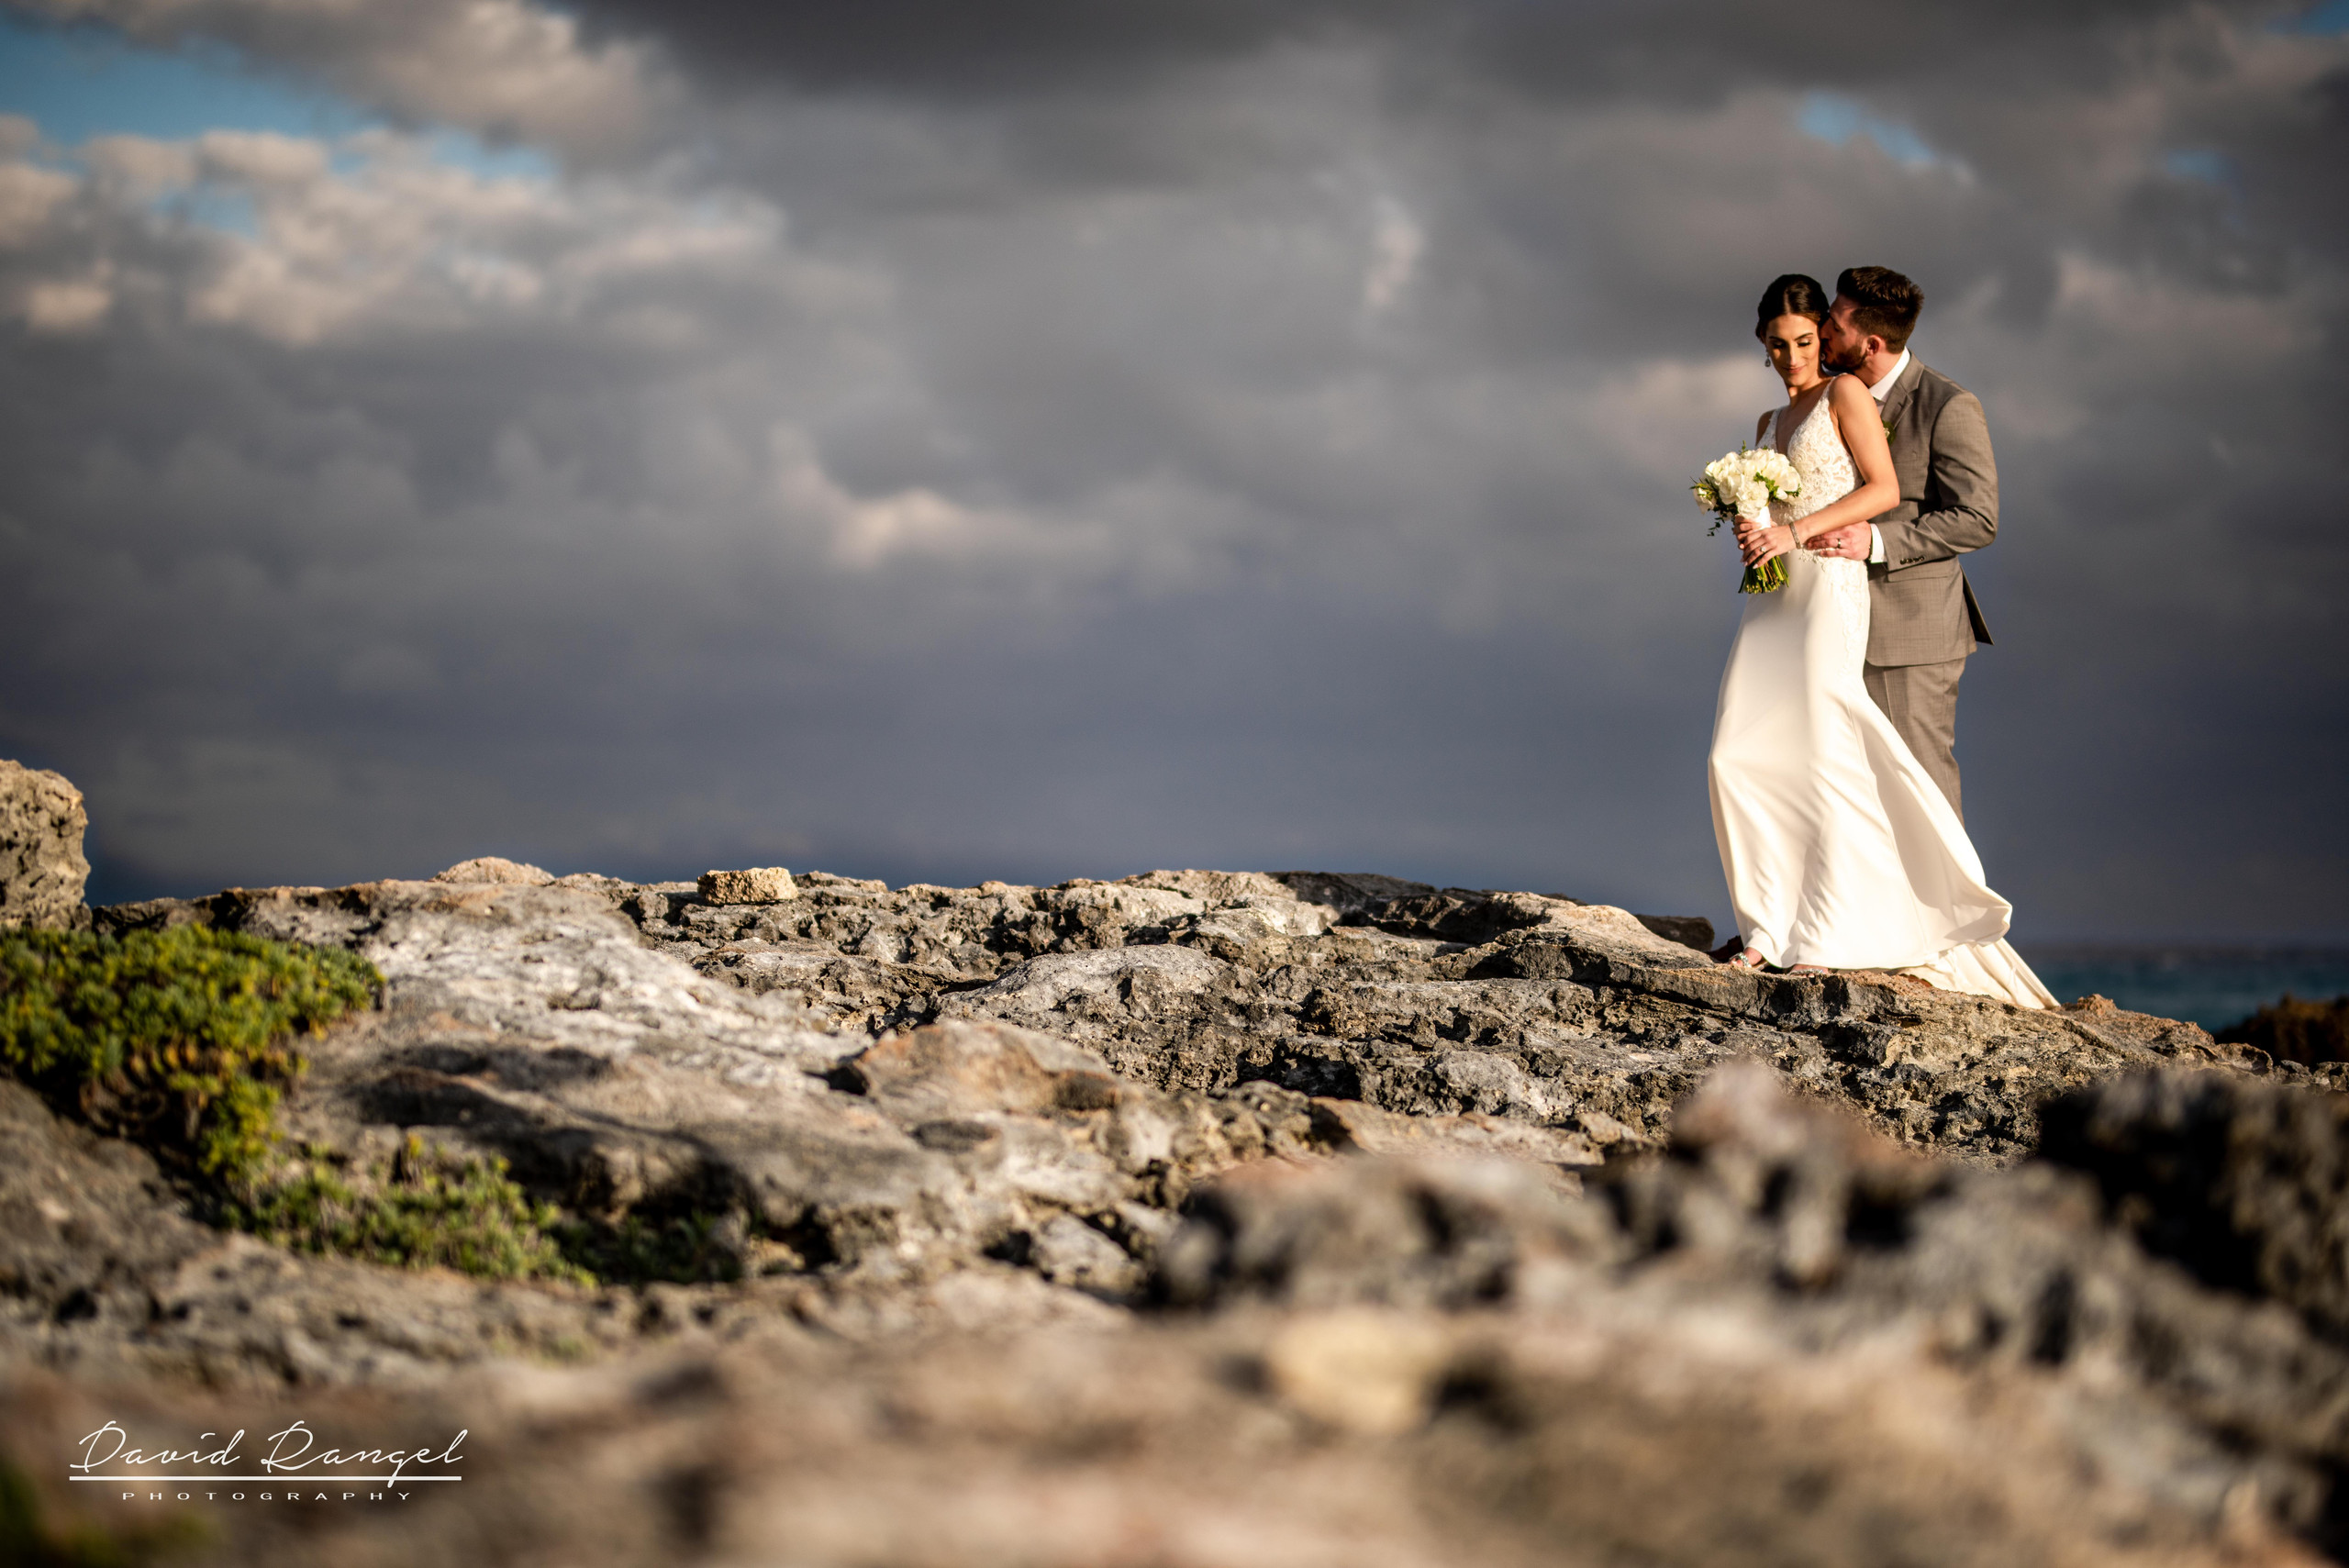 bride+groom+photo+destination+photographer